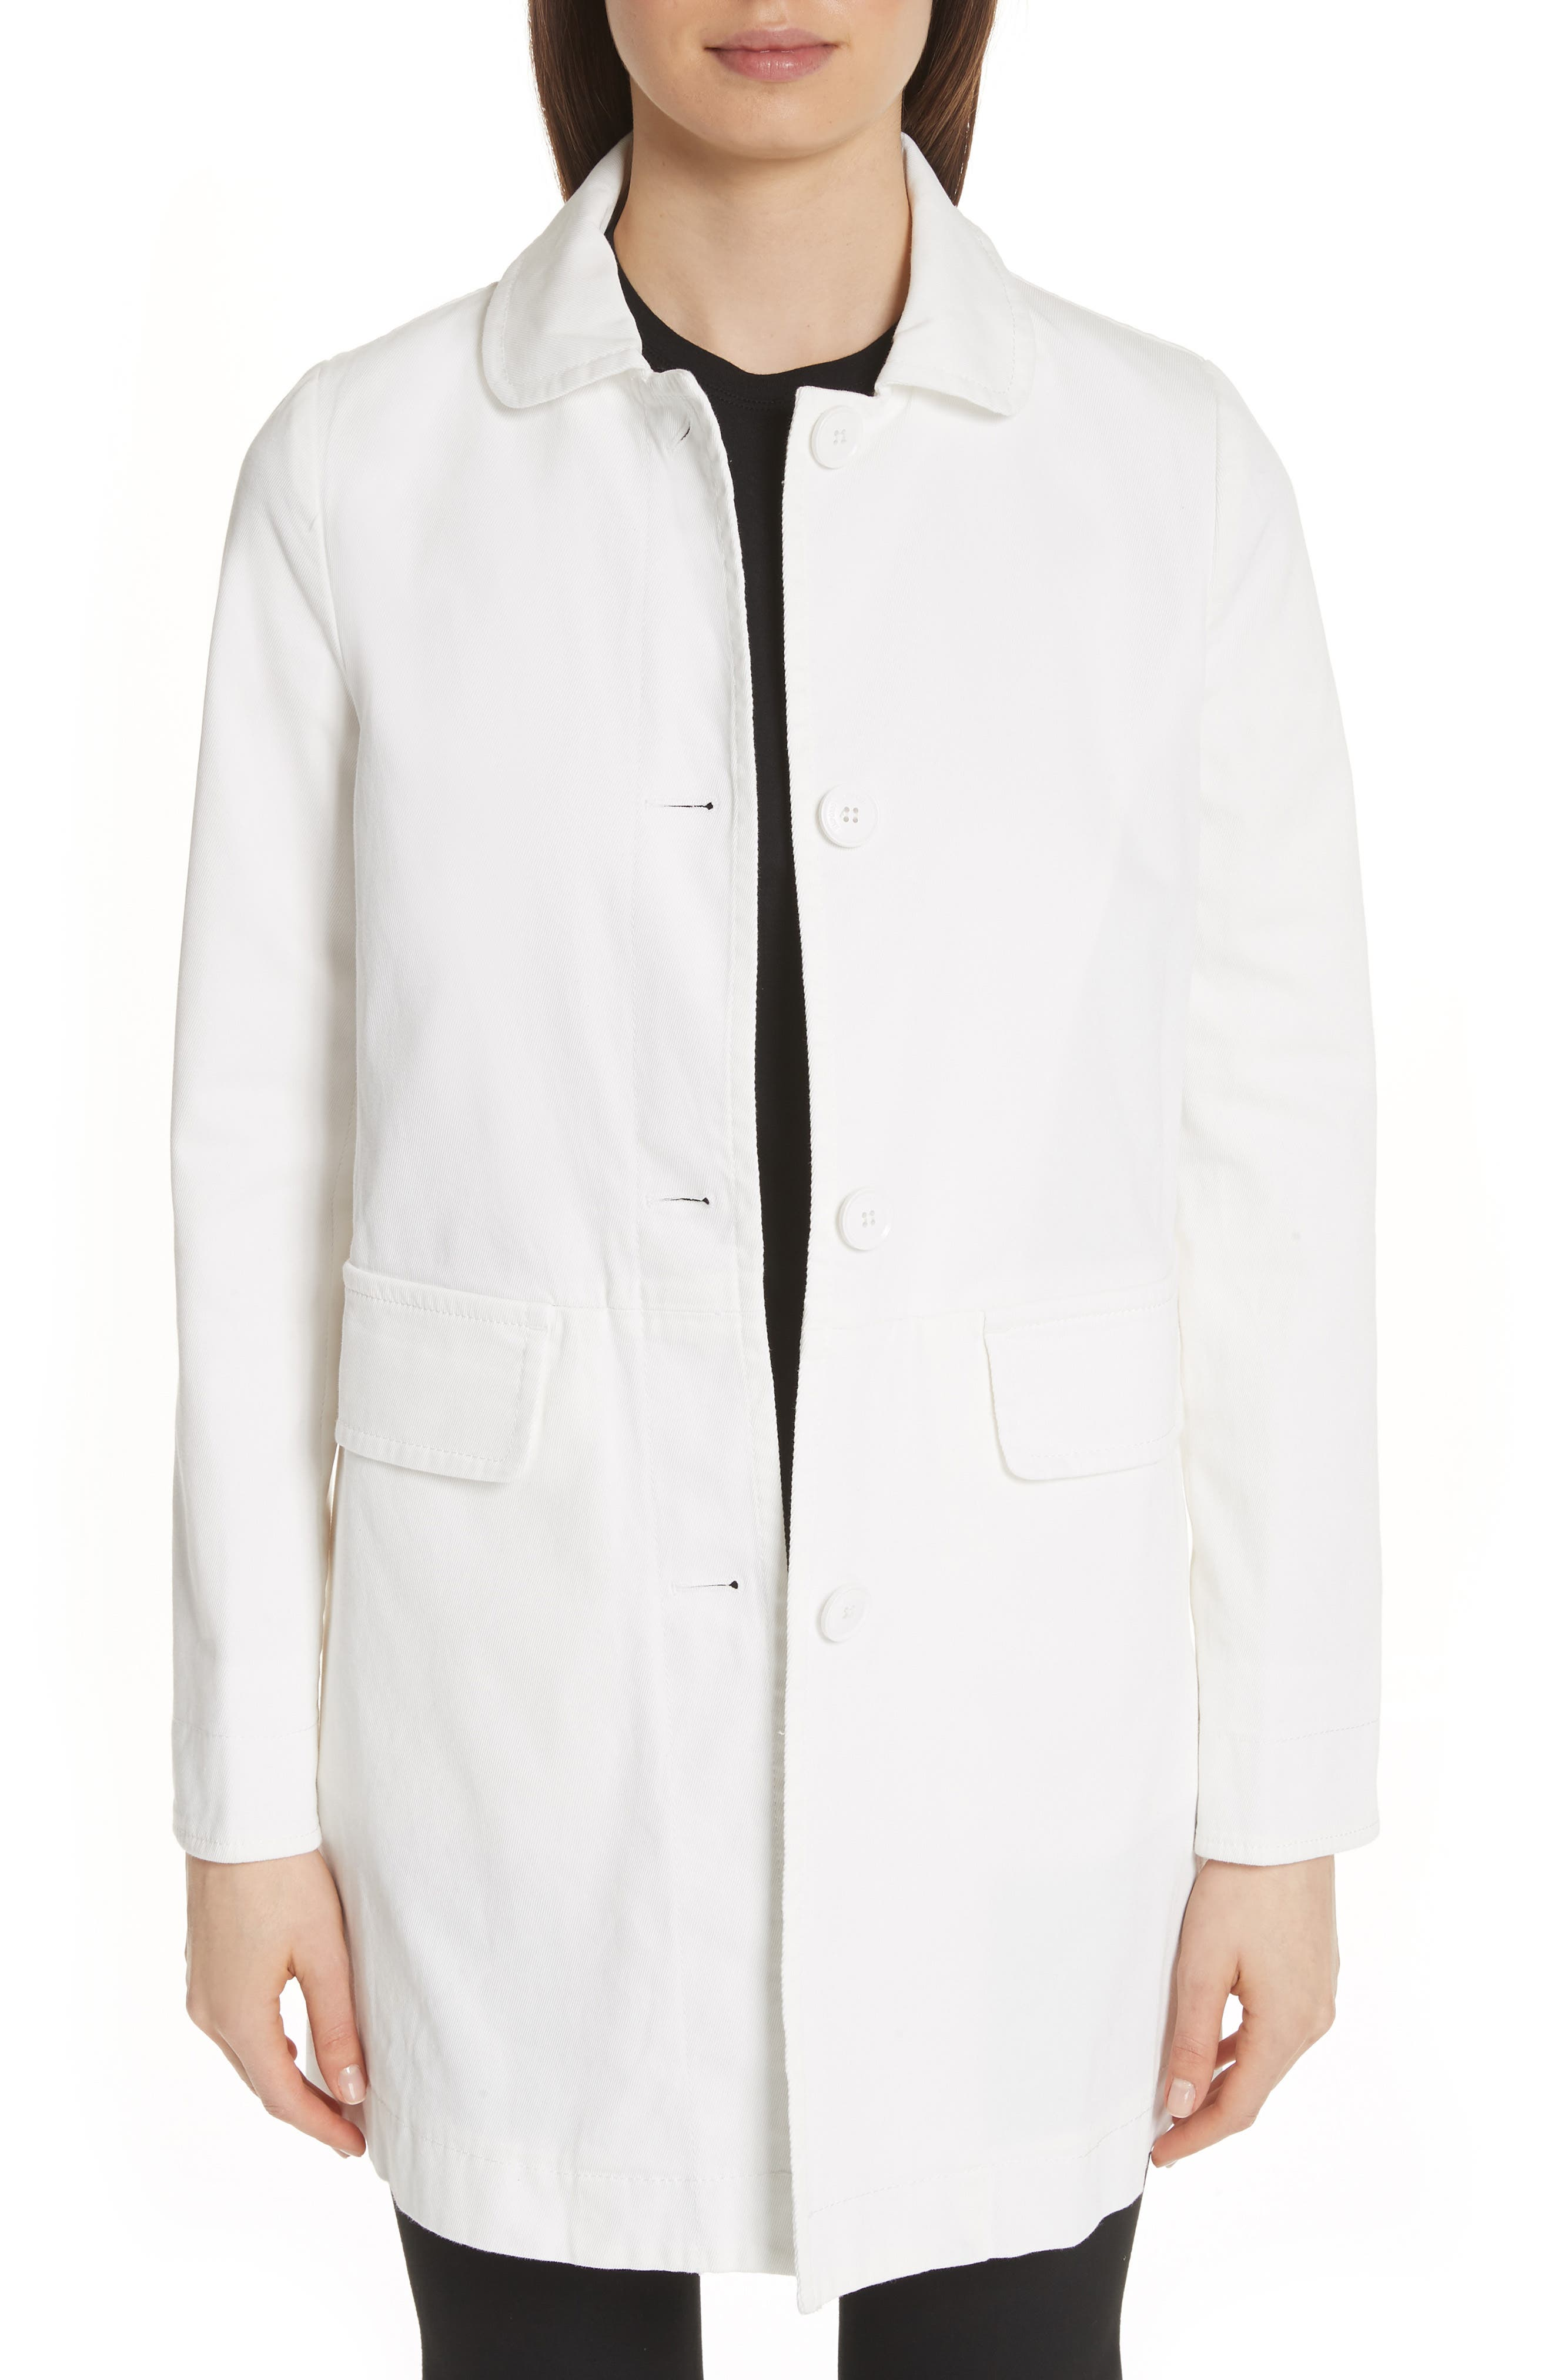 Calvary Stretch Twill Caban Coat,                         Main,                         color, 250